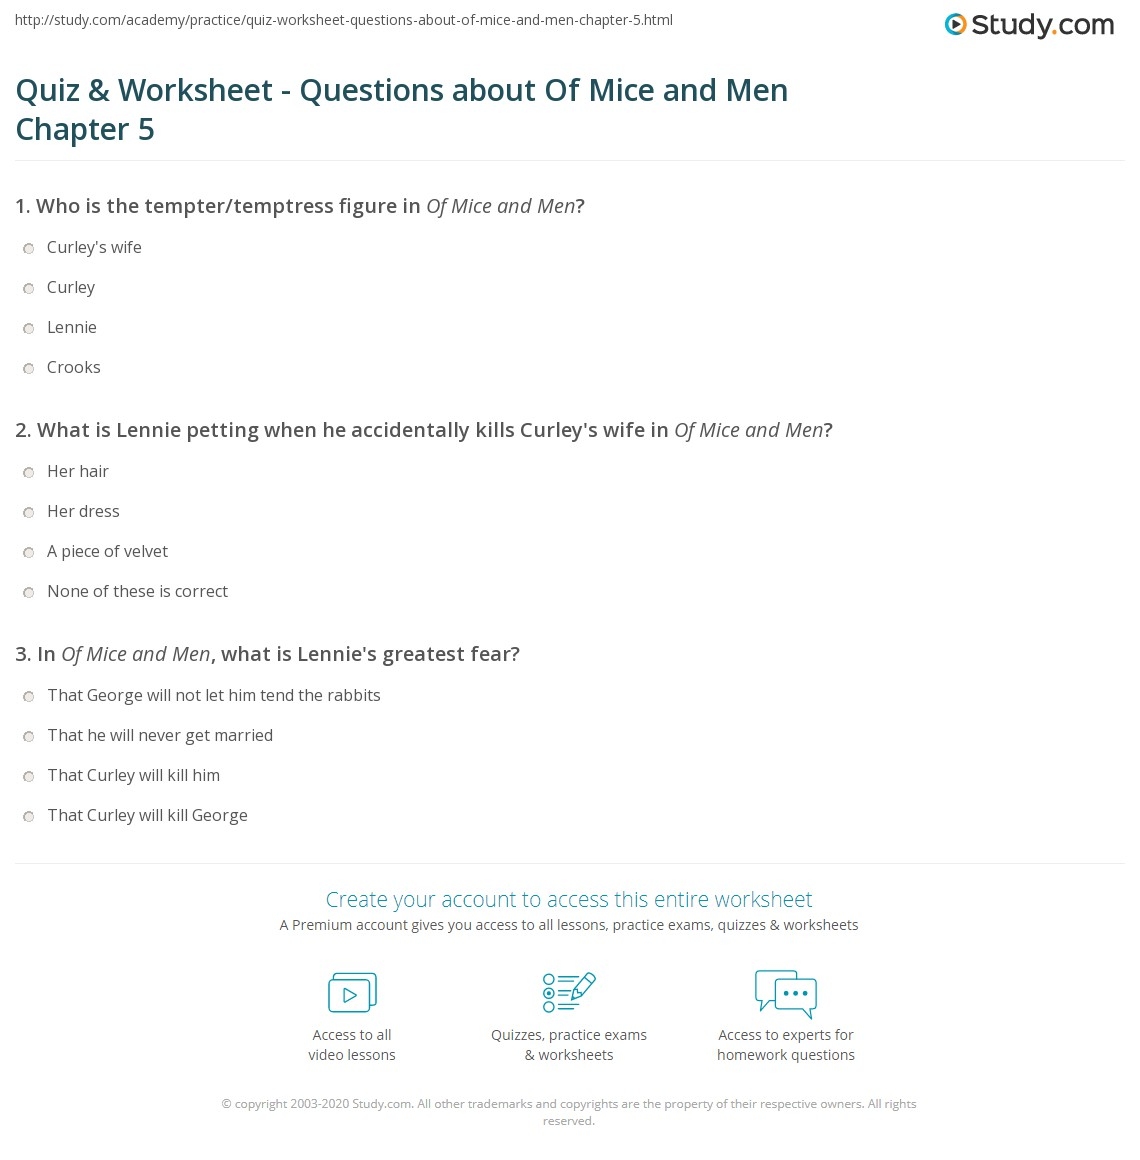 Worksheets Of Mice And Men Worksheet quiz worksheet questions about of mice and men chapter 5 print summary quotes worksheet